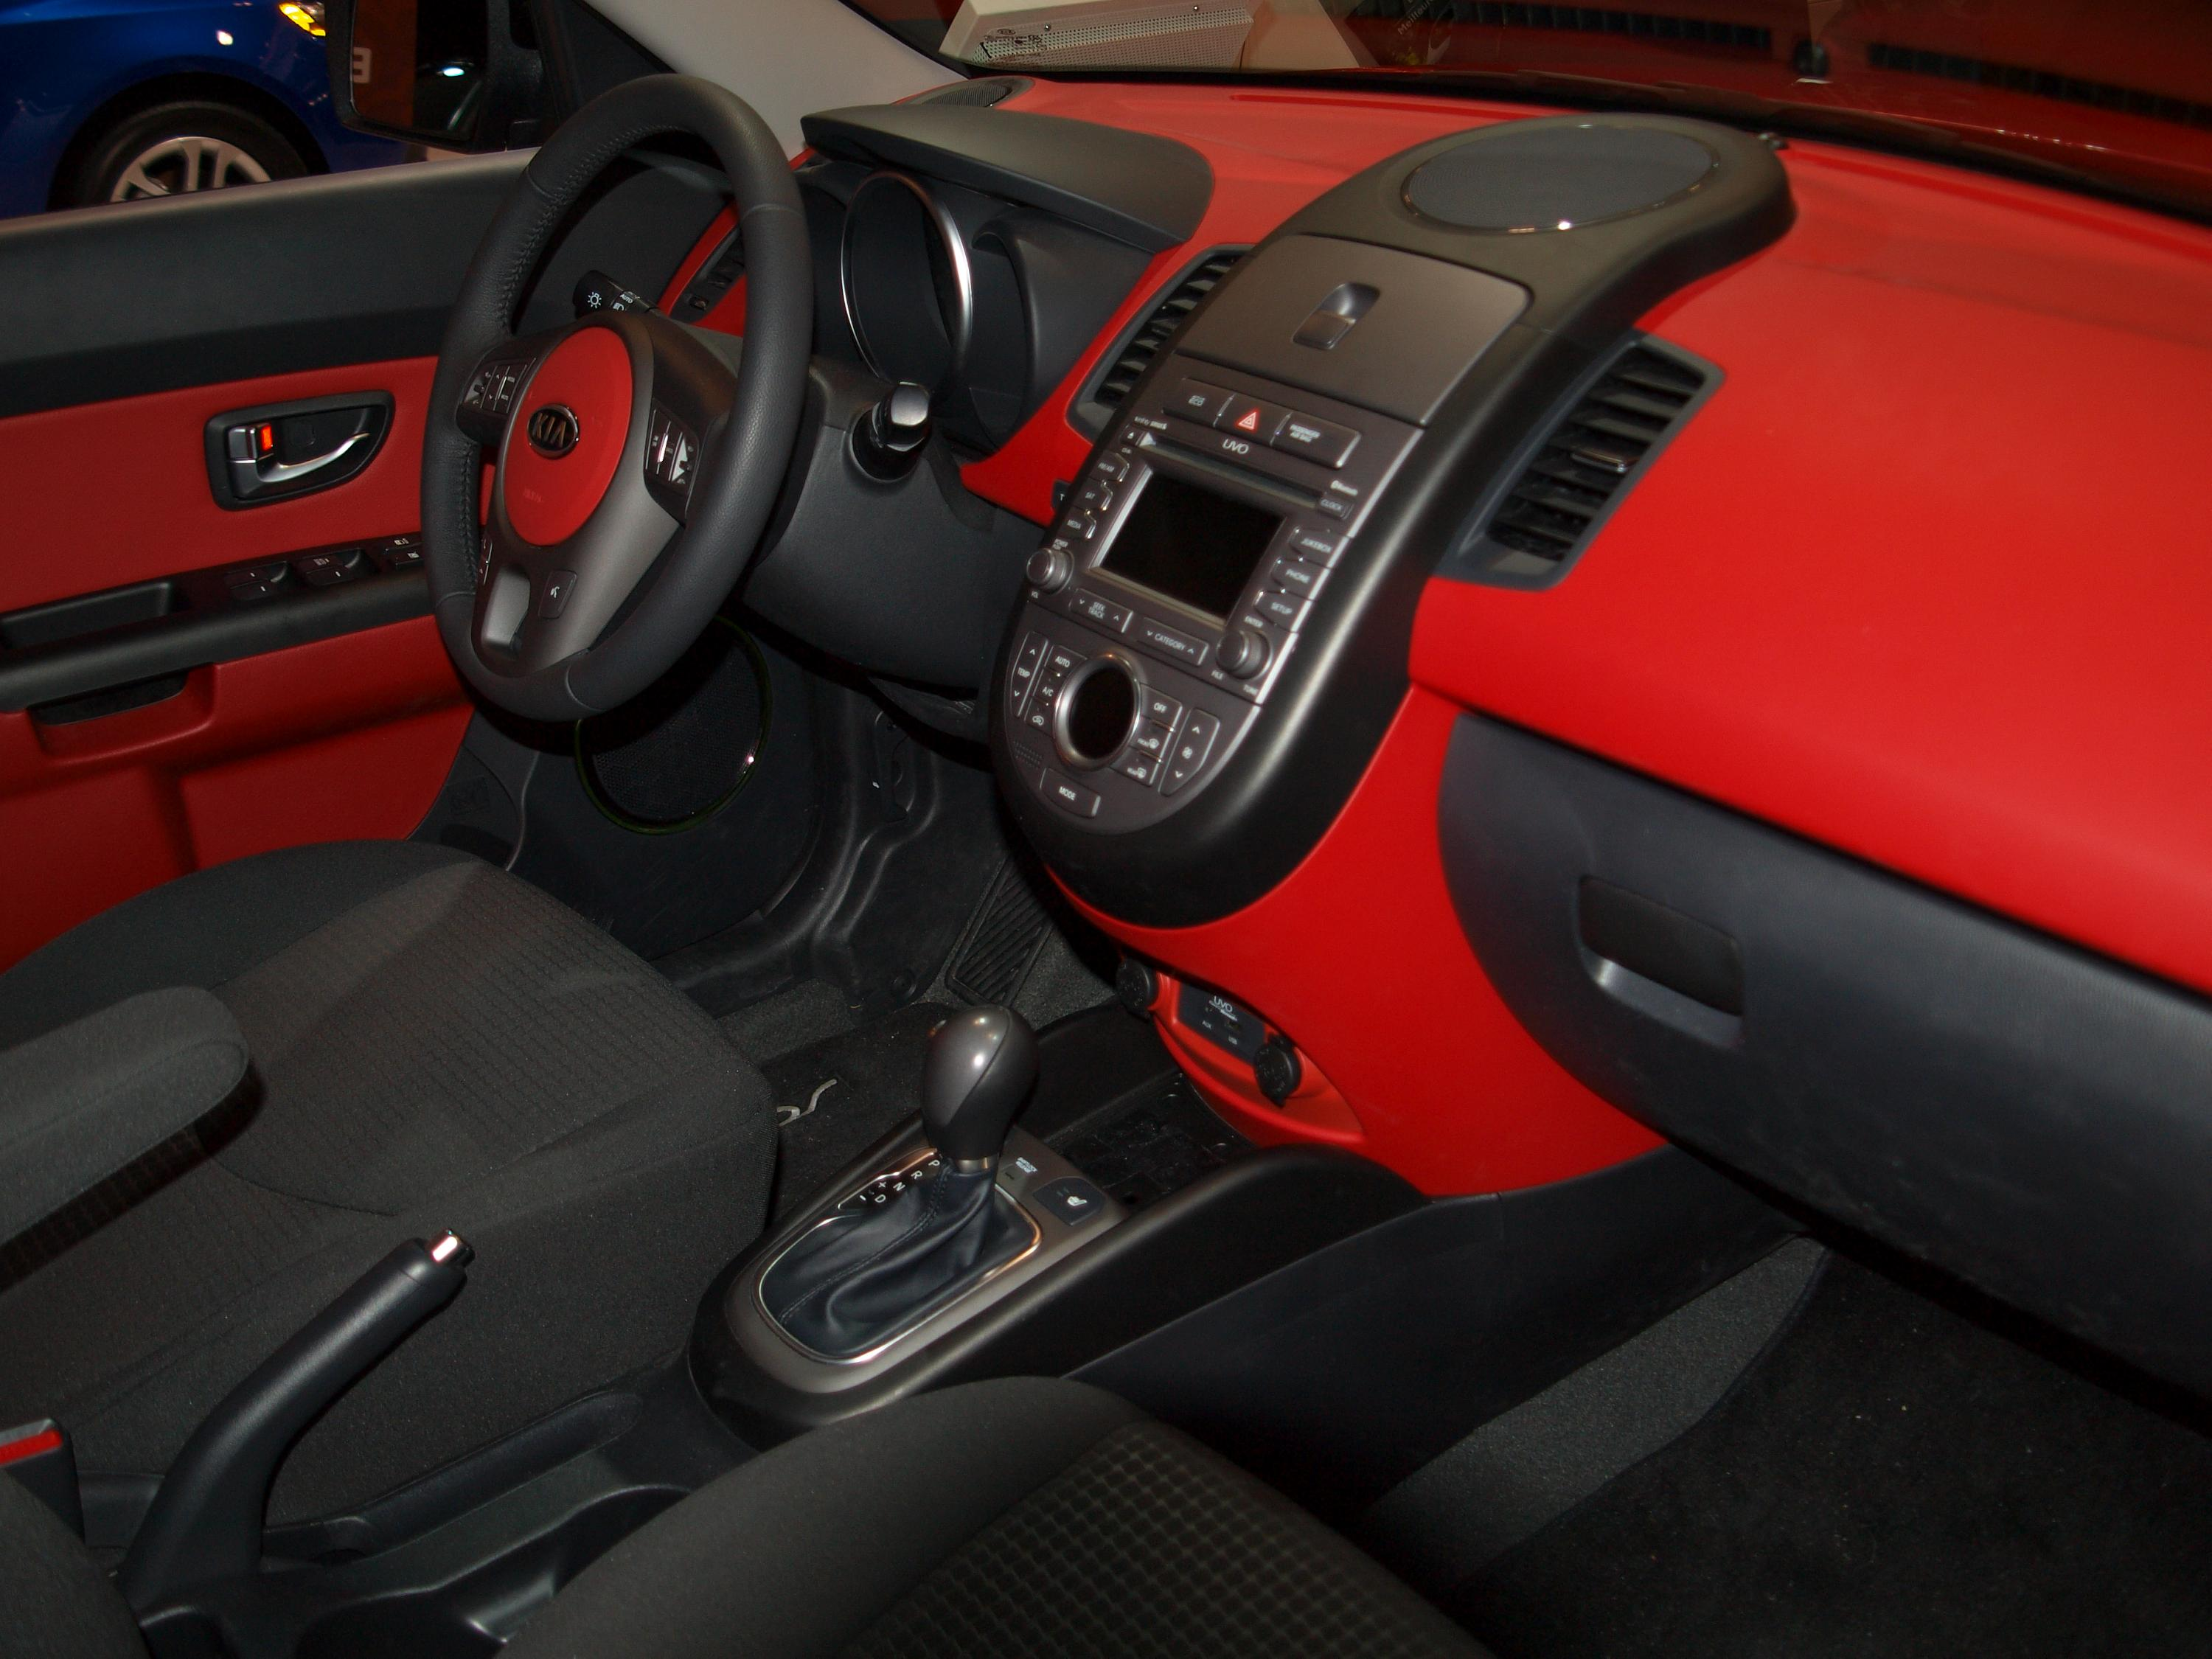 Kia Soul Interior 2012 The Image Kid Has It